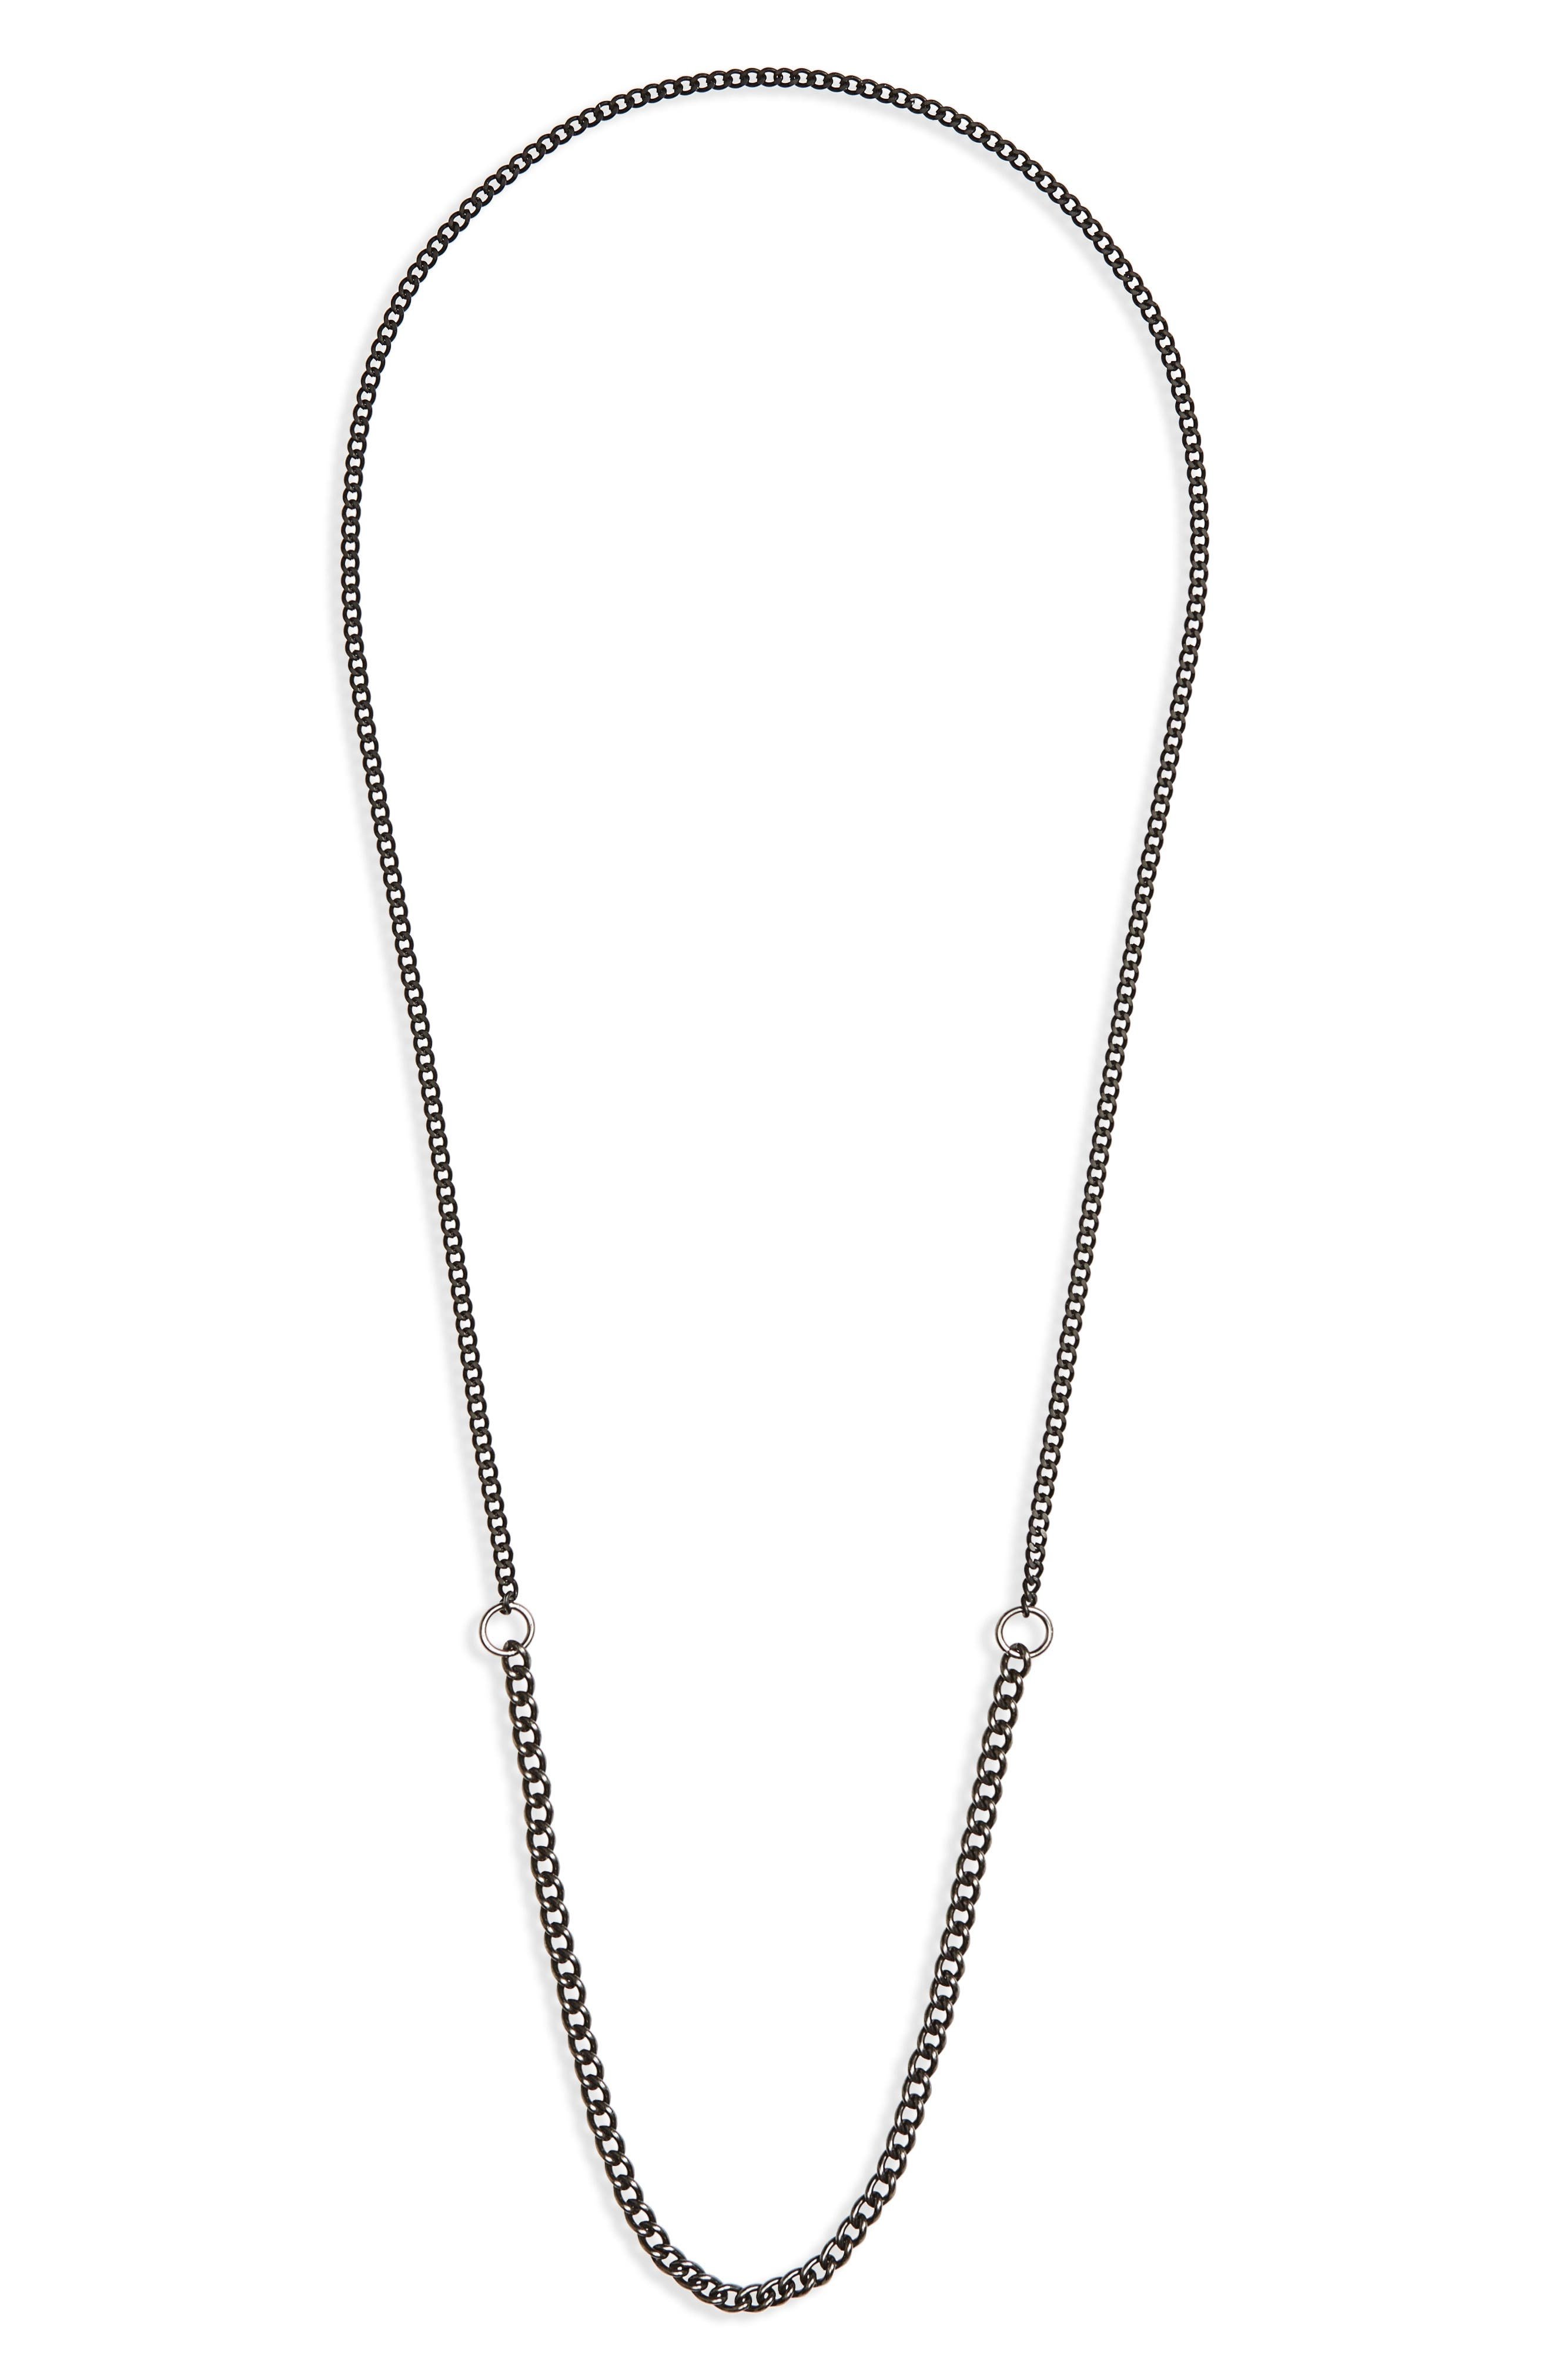 Alternate Image 1 Selected - Vitaly Binary Chain Link Necklace